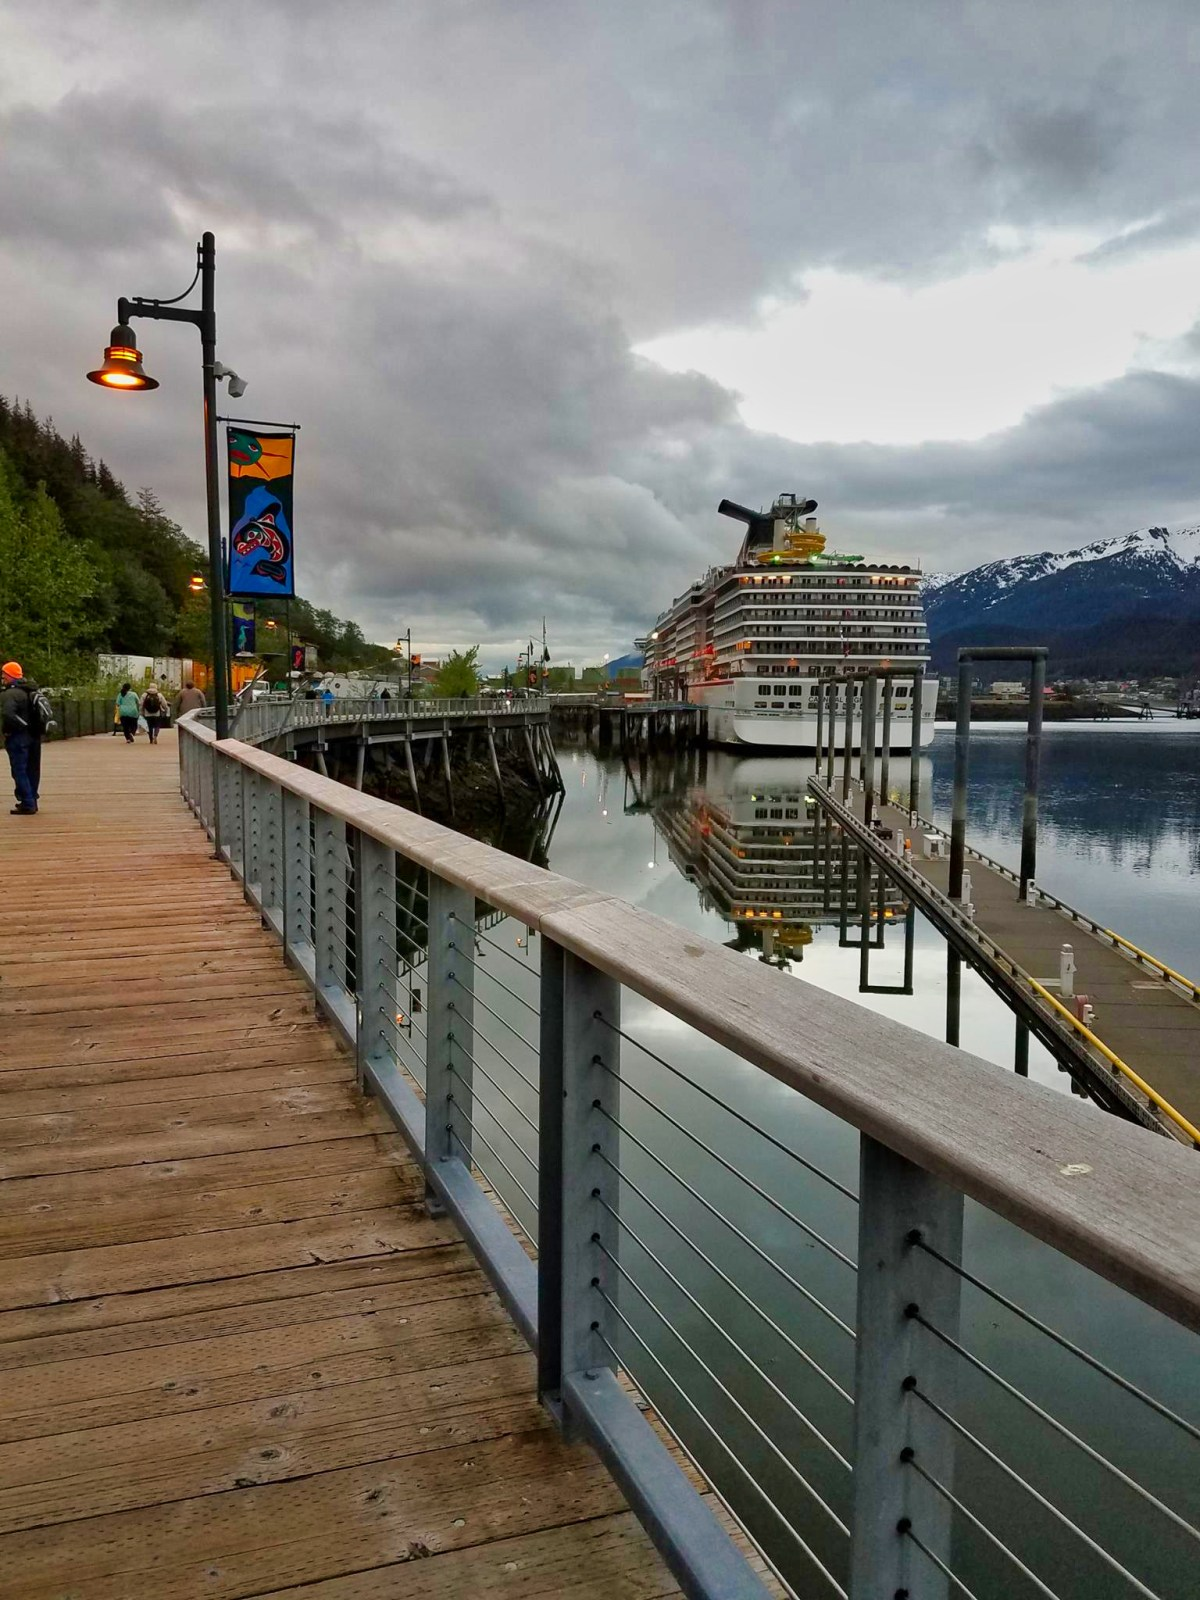 When is the best time to go on an Alaskan cruise?